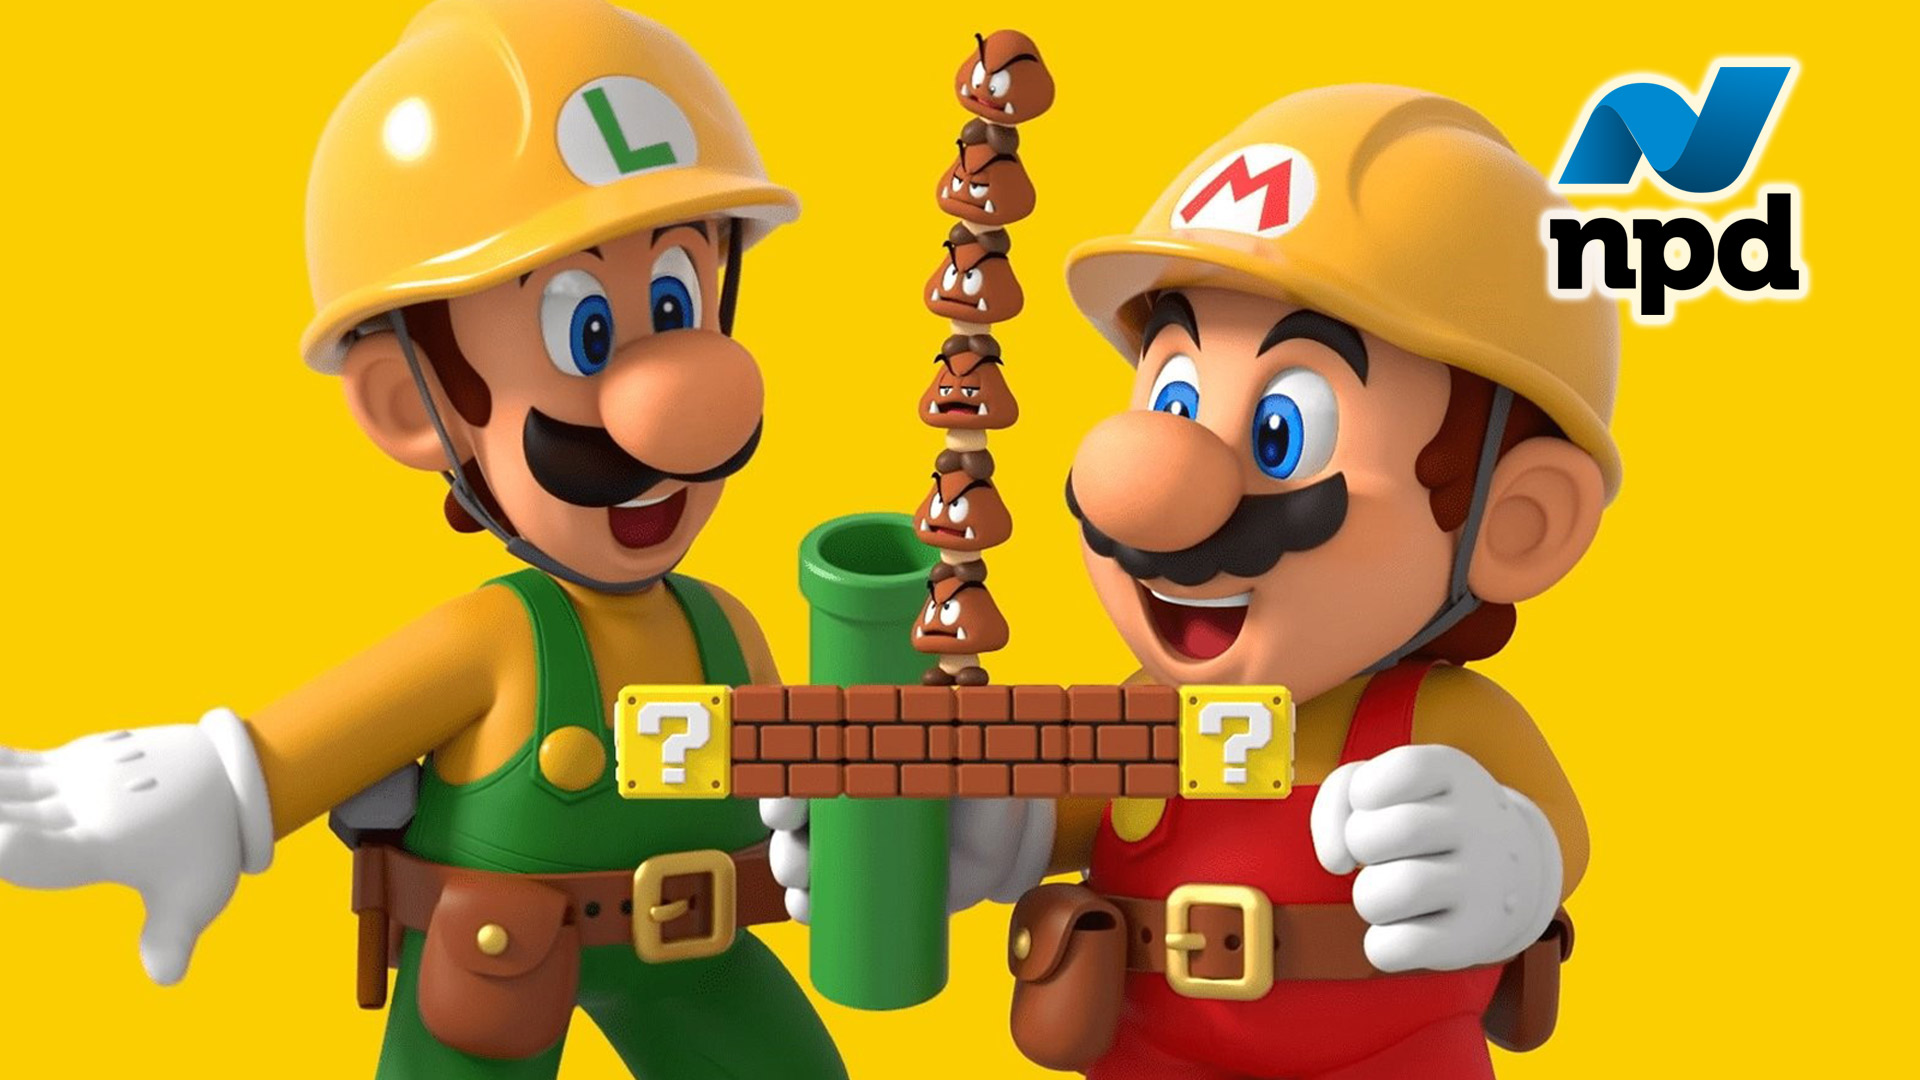 NPD June 2019 Gaming Estimates and Analysis: Mario Makes Money